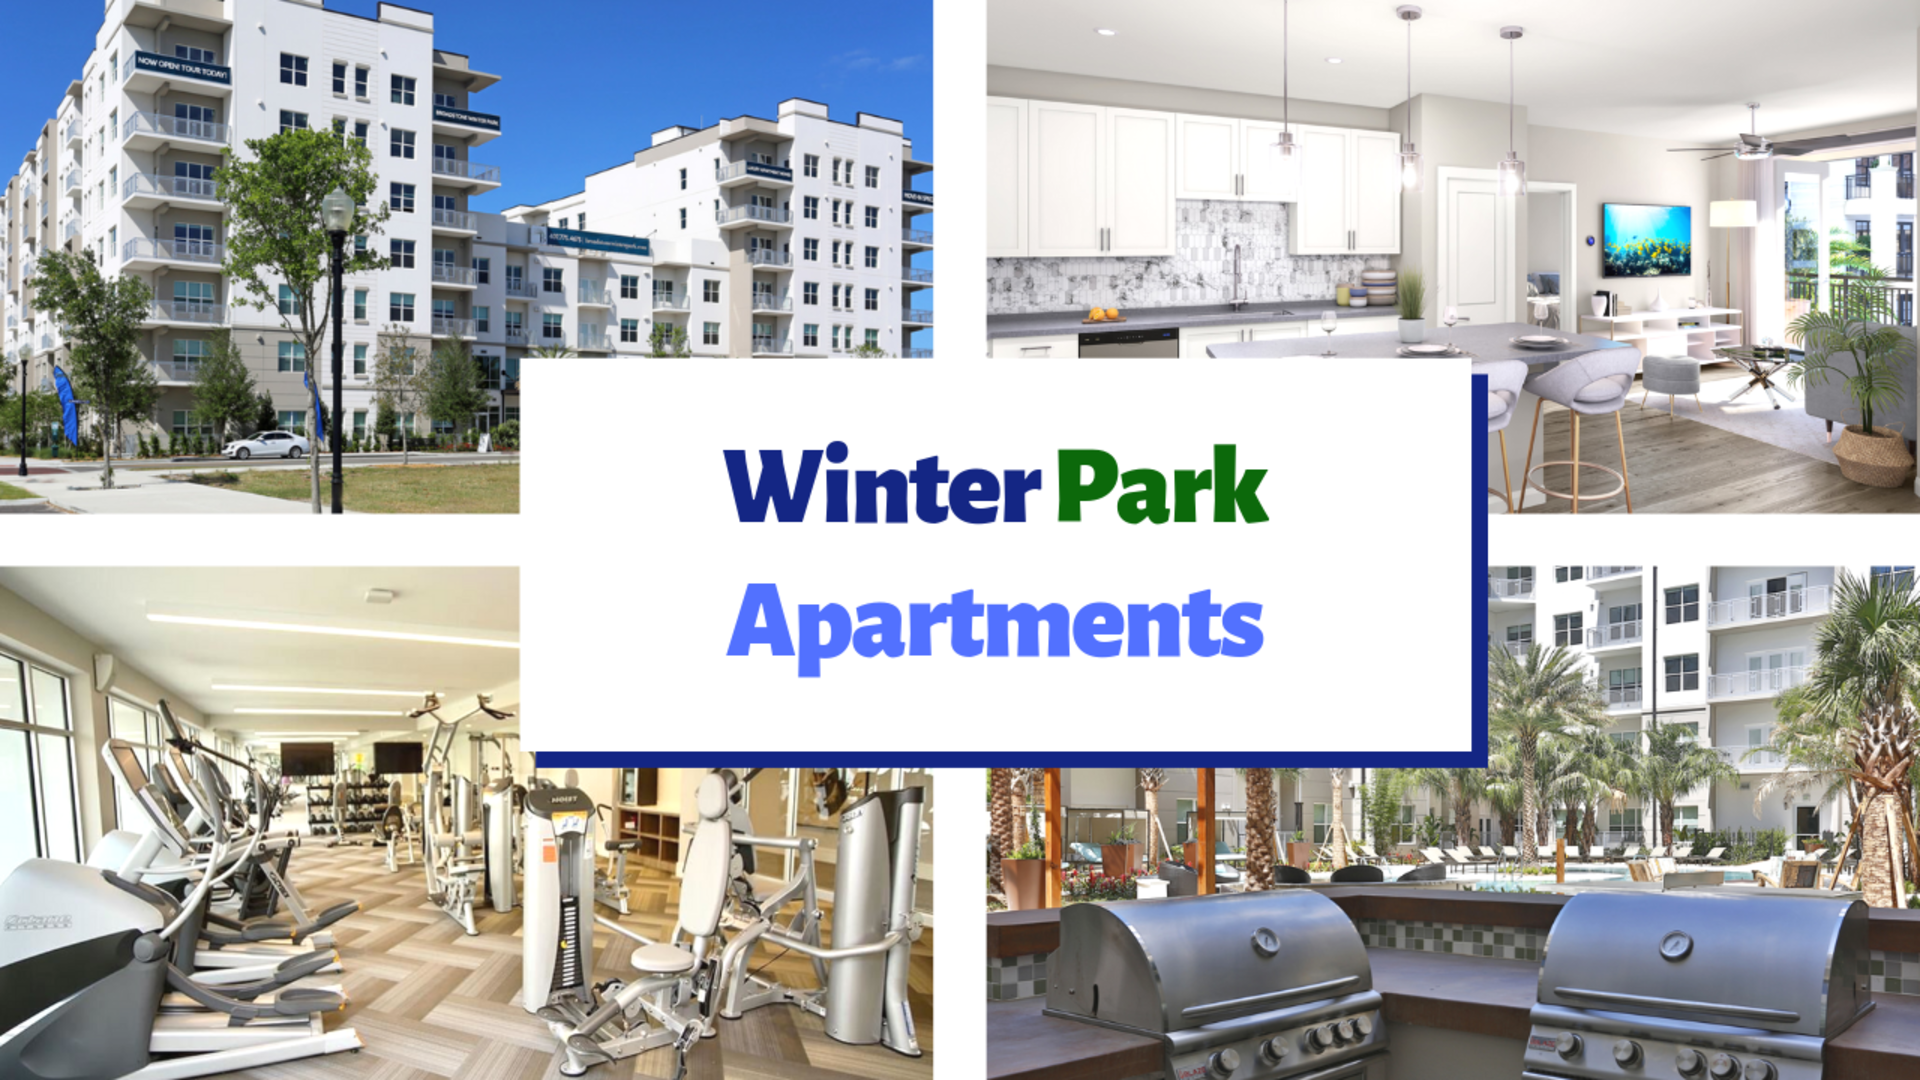 Finding an apartment in Winter Park Florida